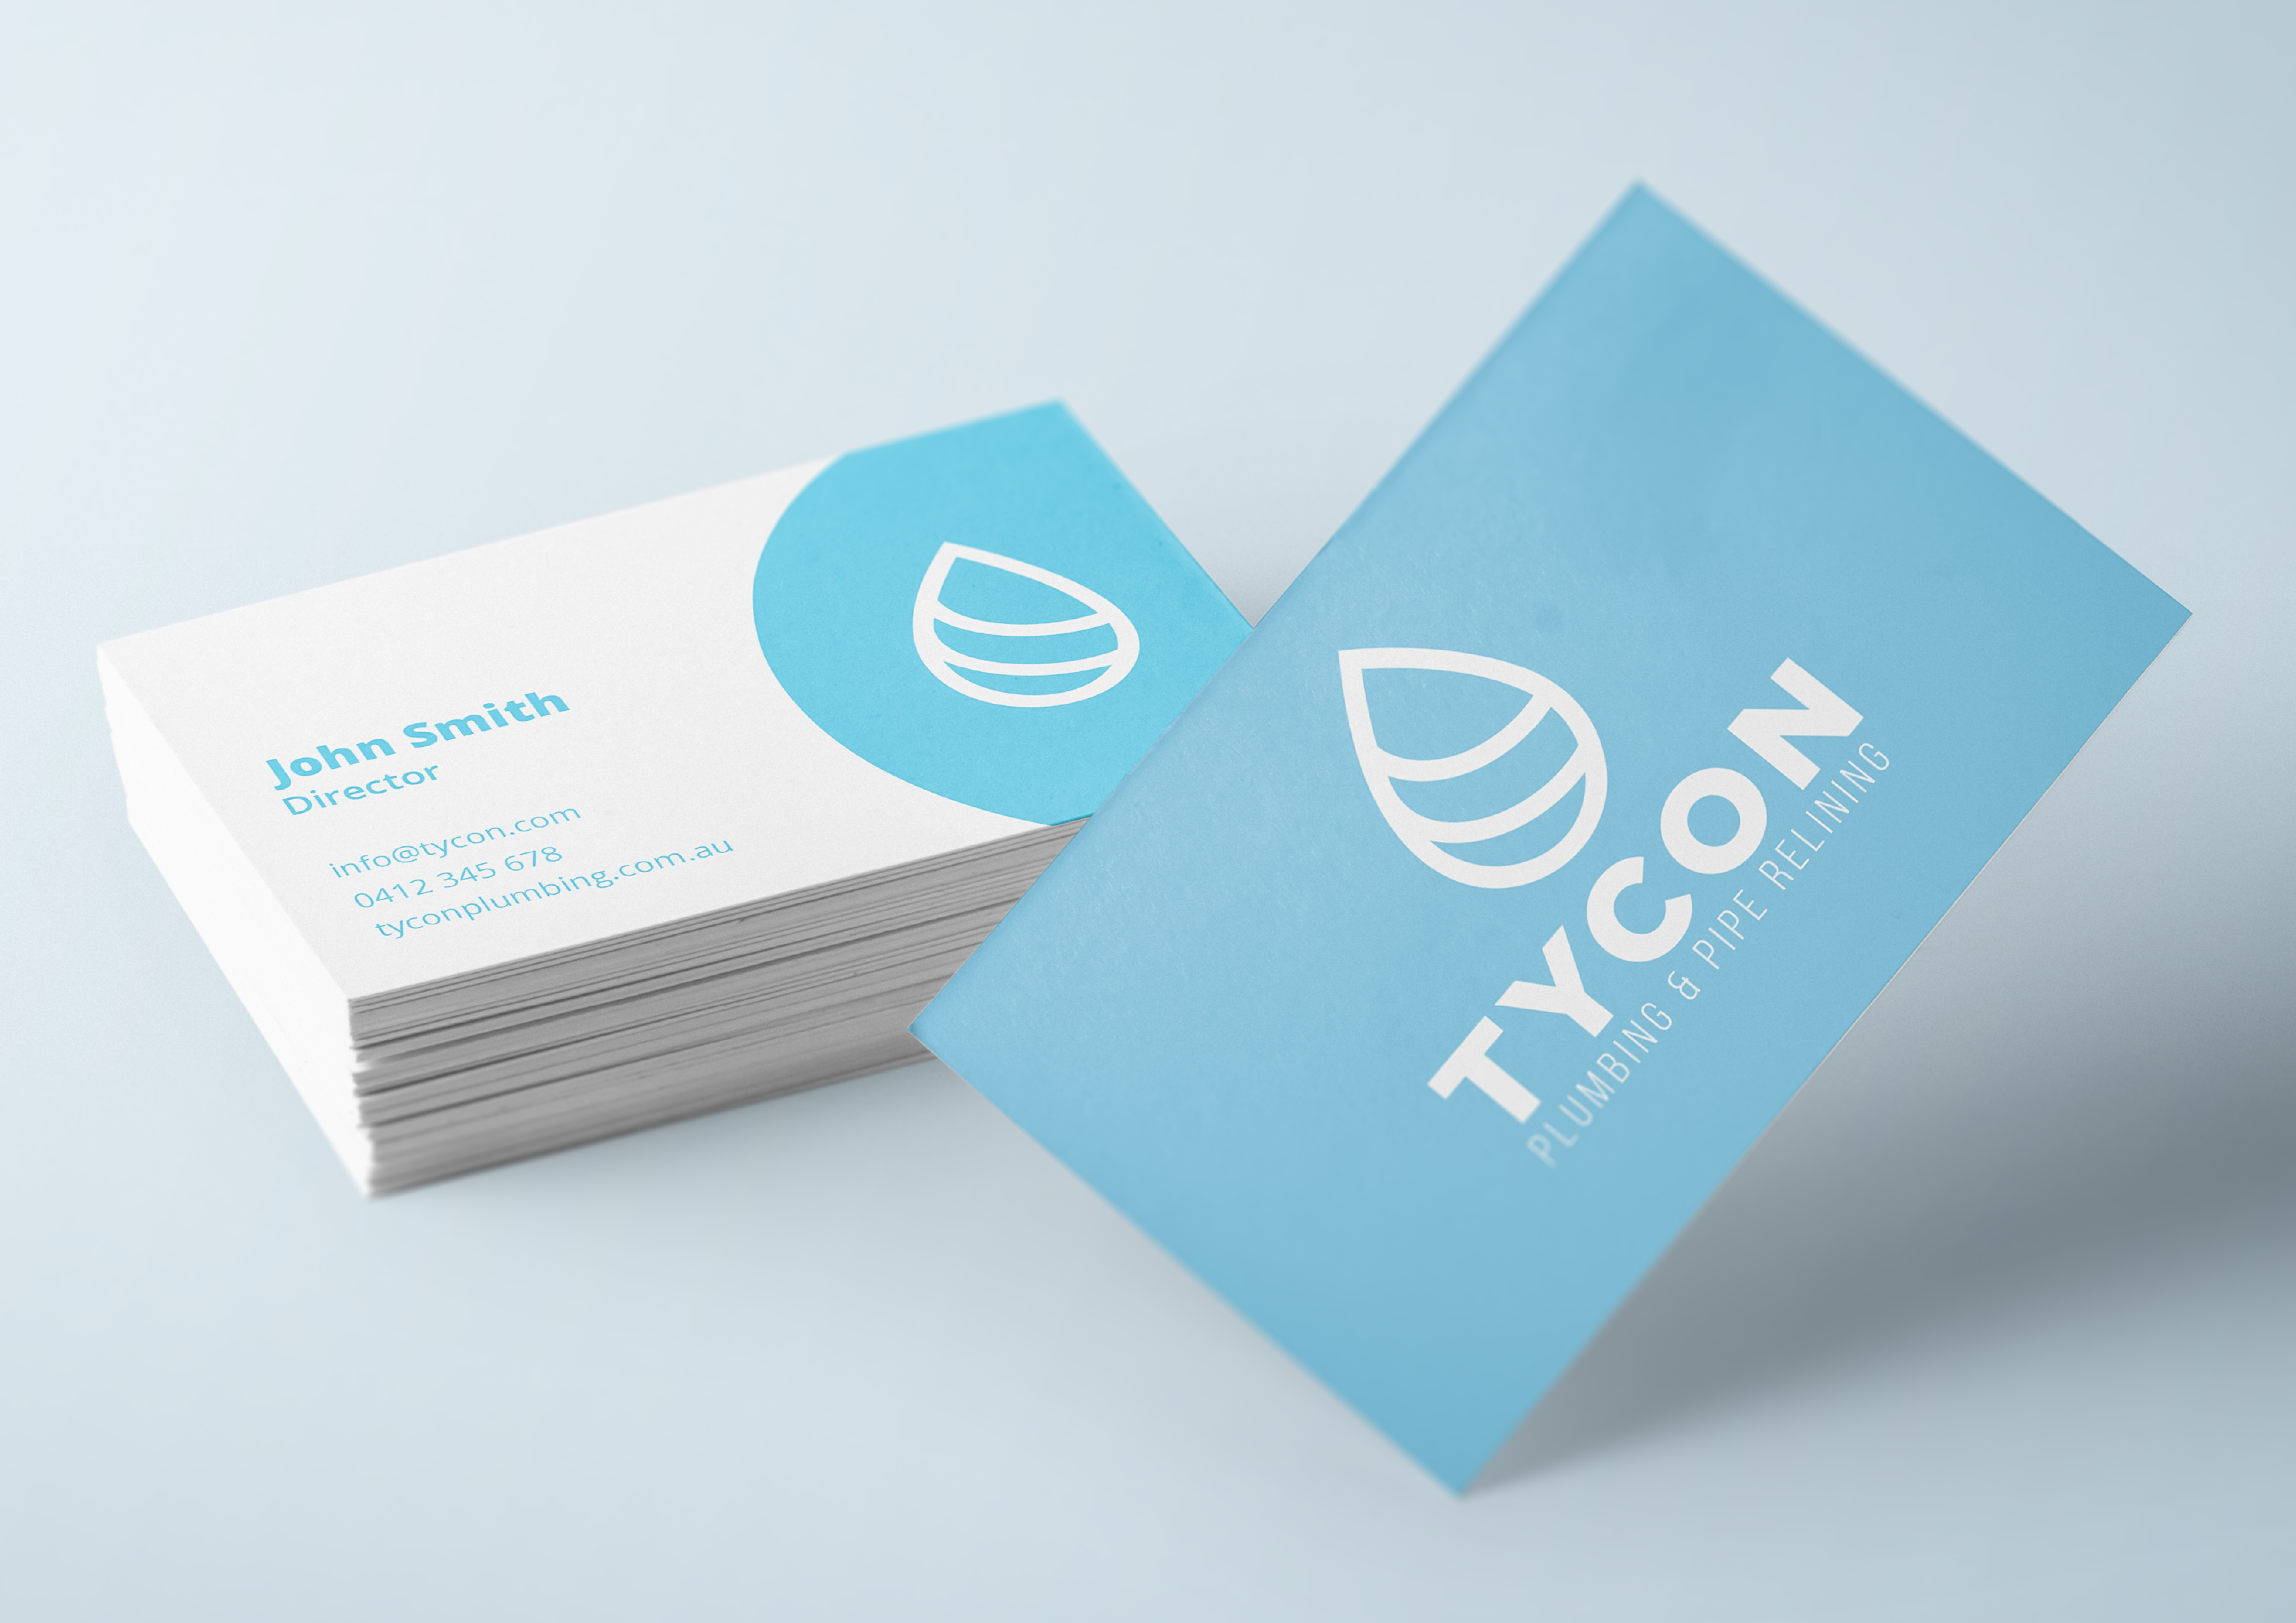 Tycon plumbing business cards